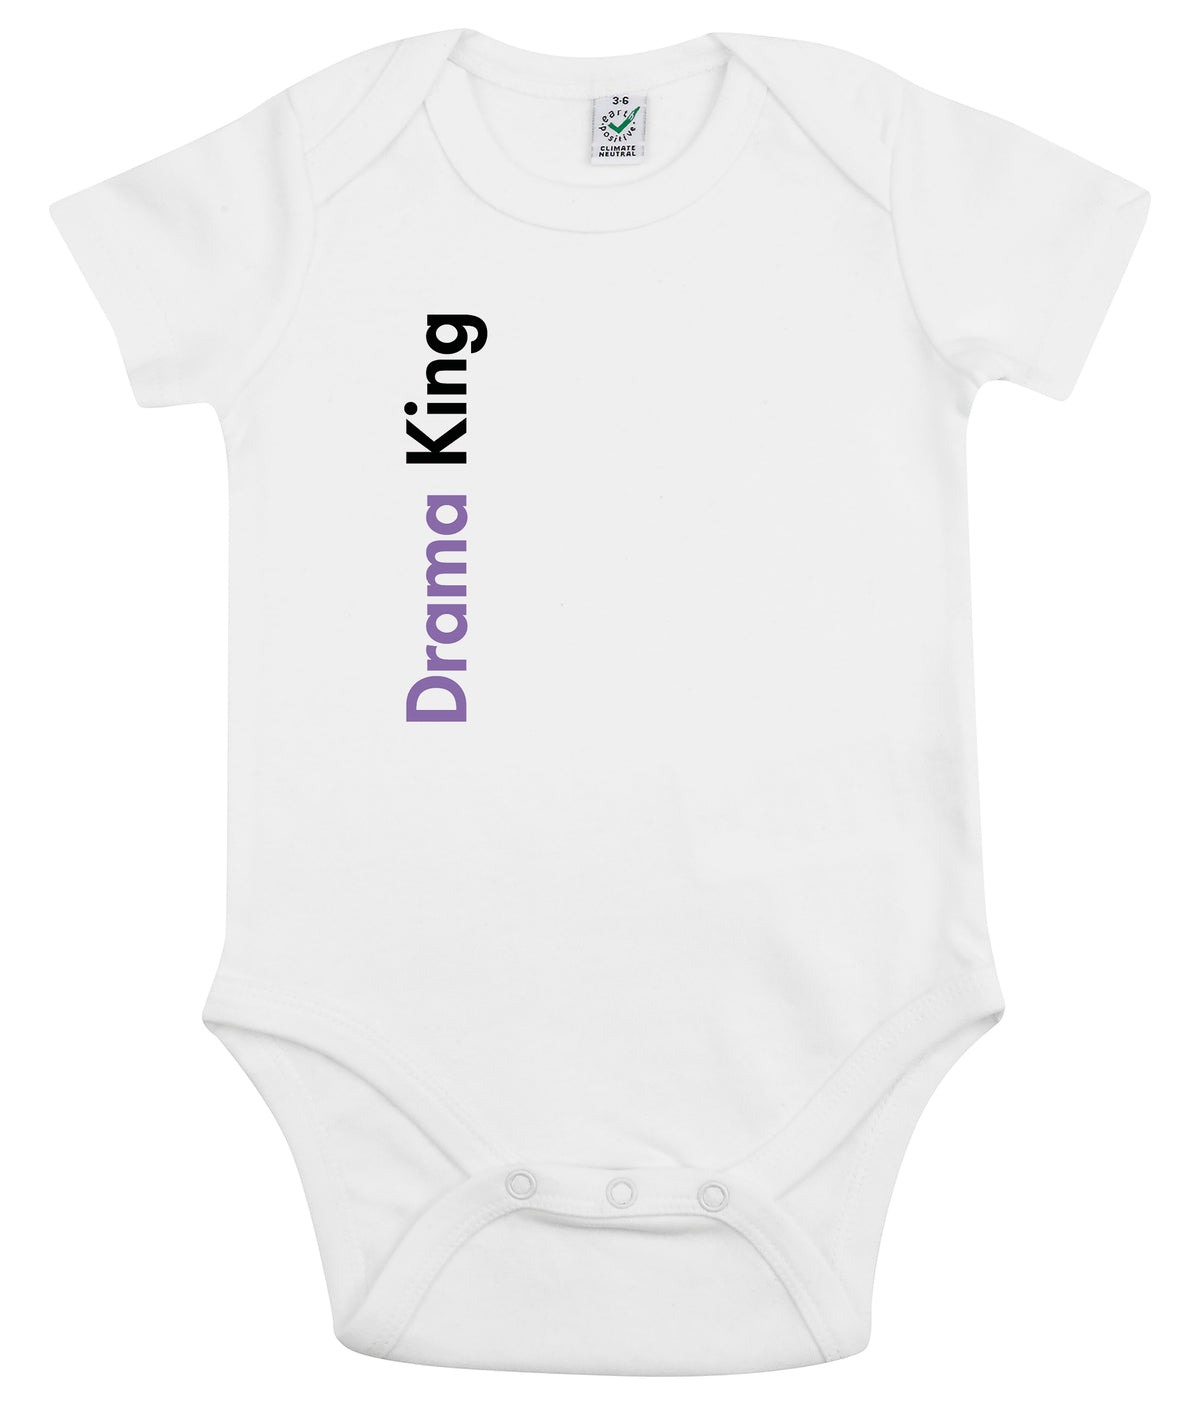 Drama King Organic Combed Cotton Babygrow White